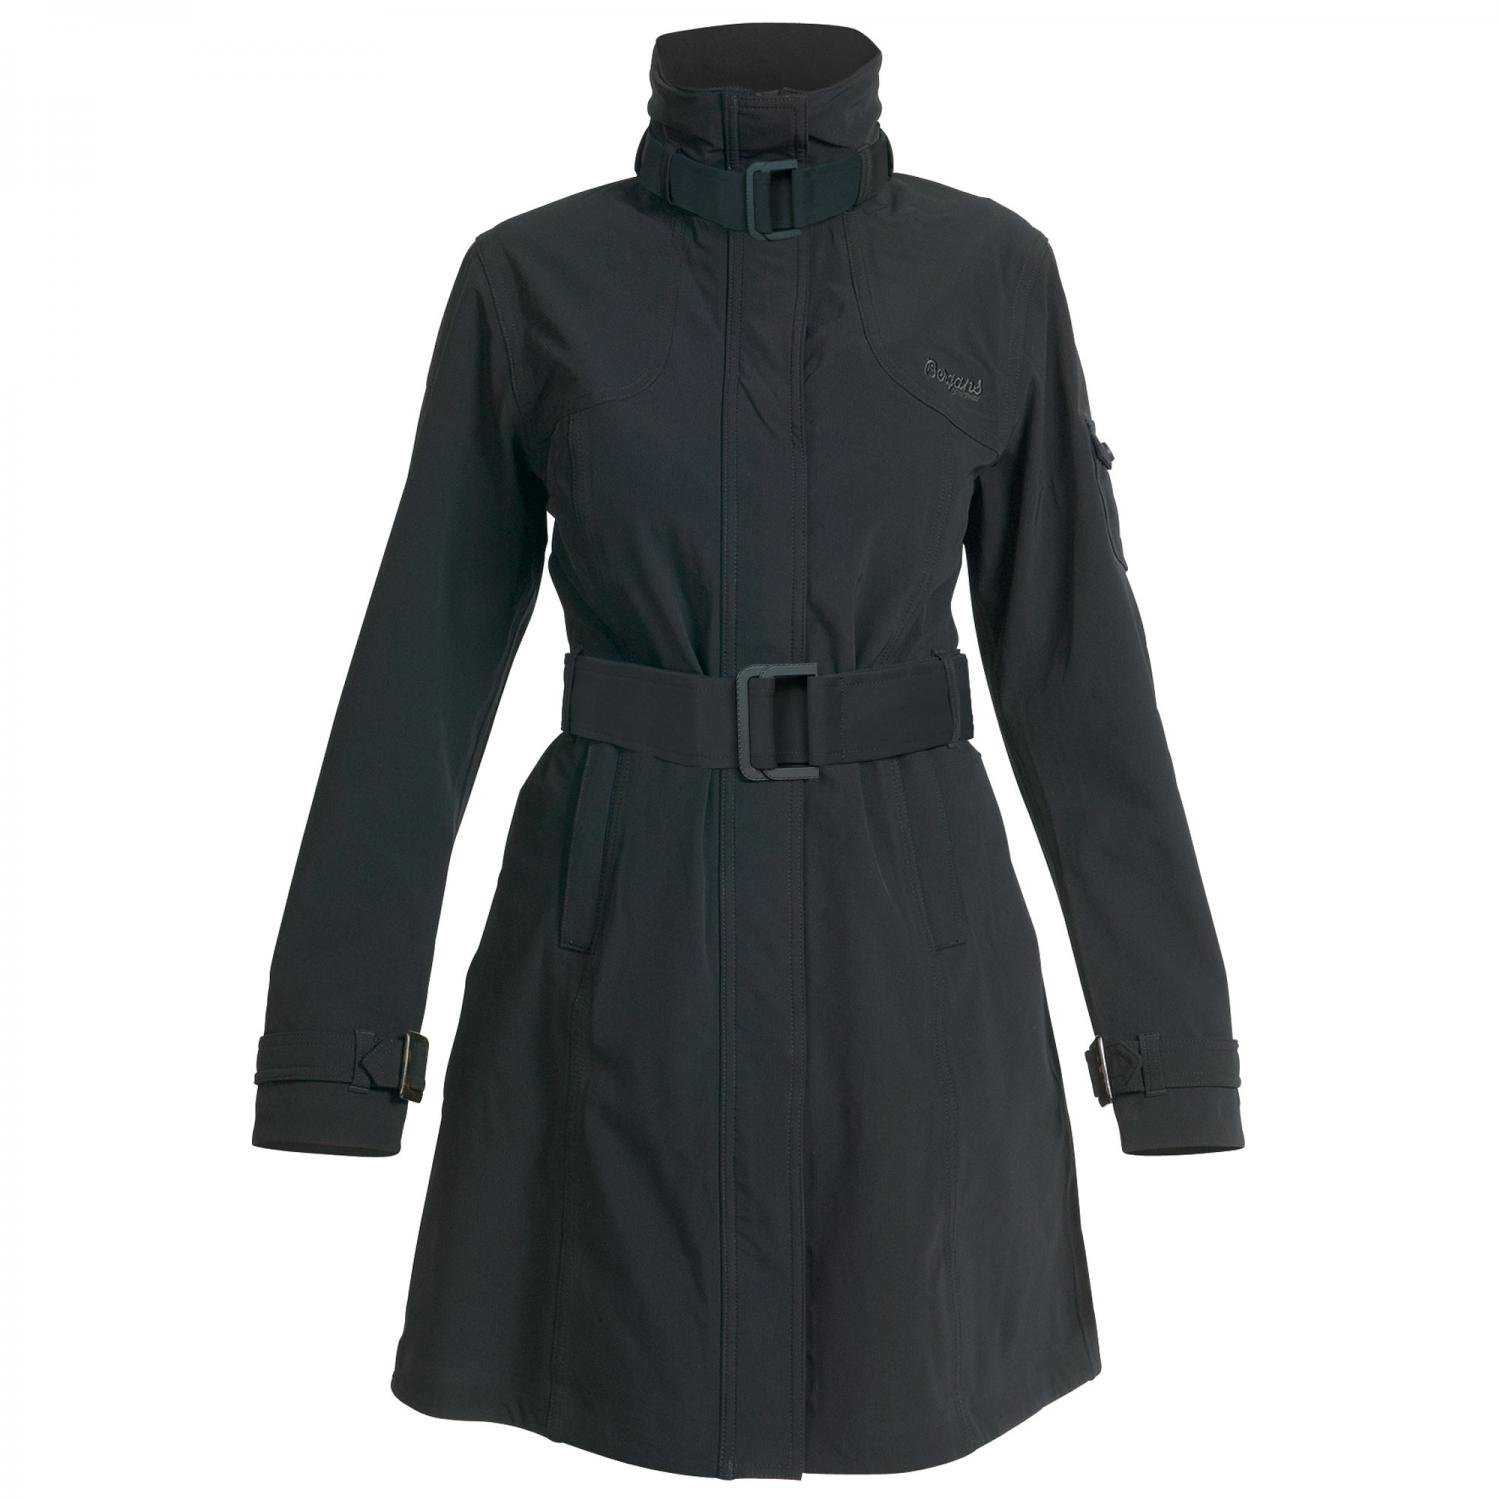 Bergans Damen Jacke Oslo Lady Trench Coat 5921